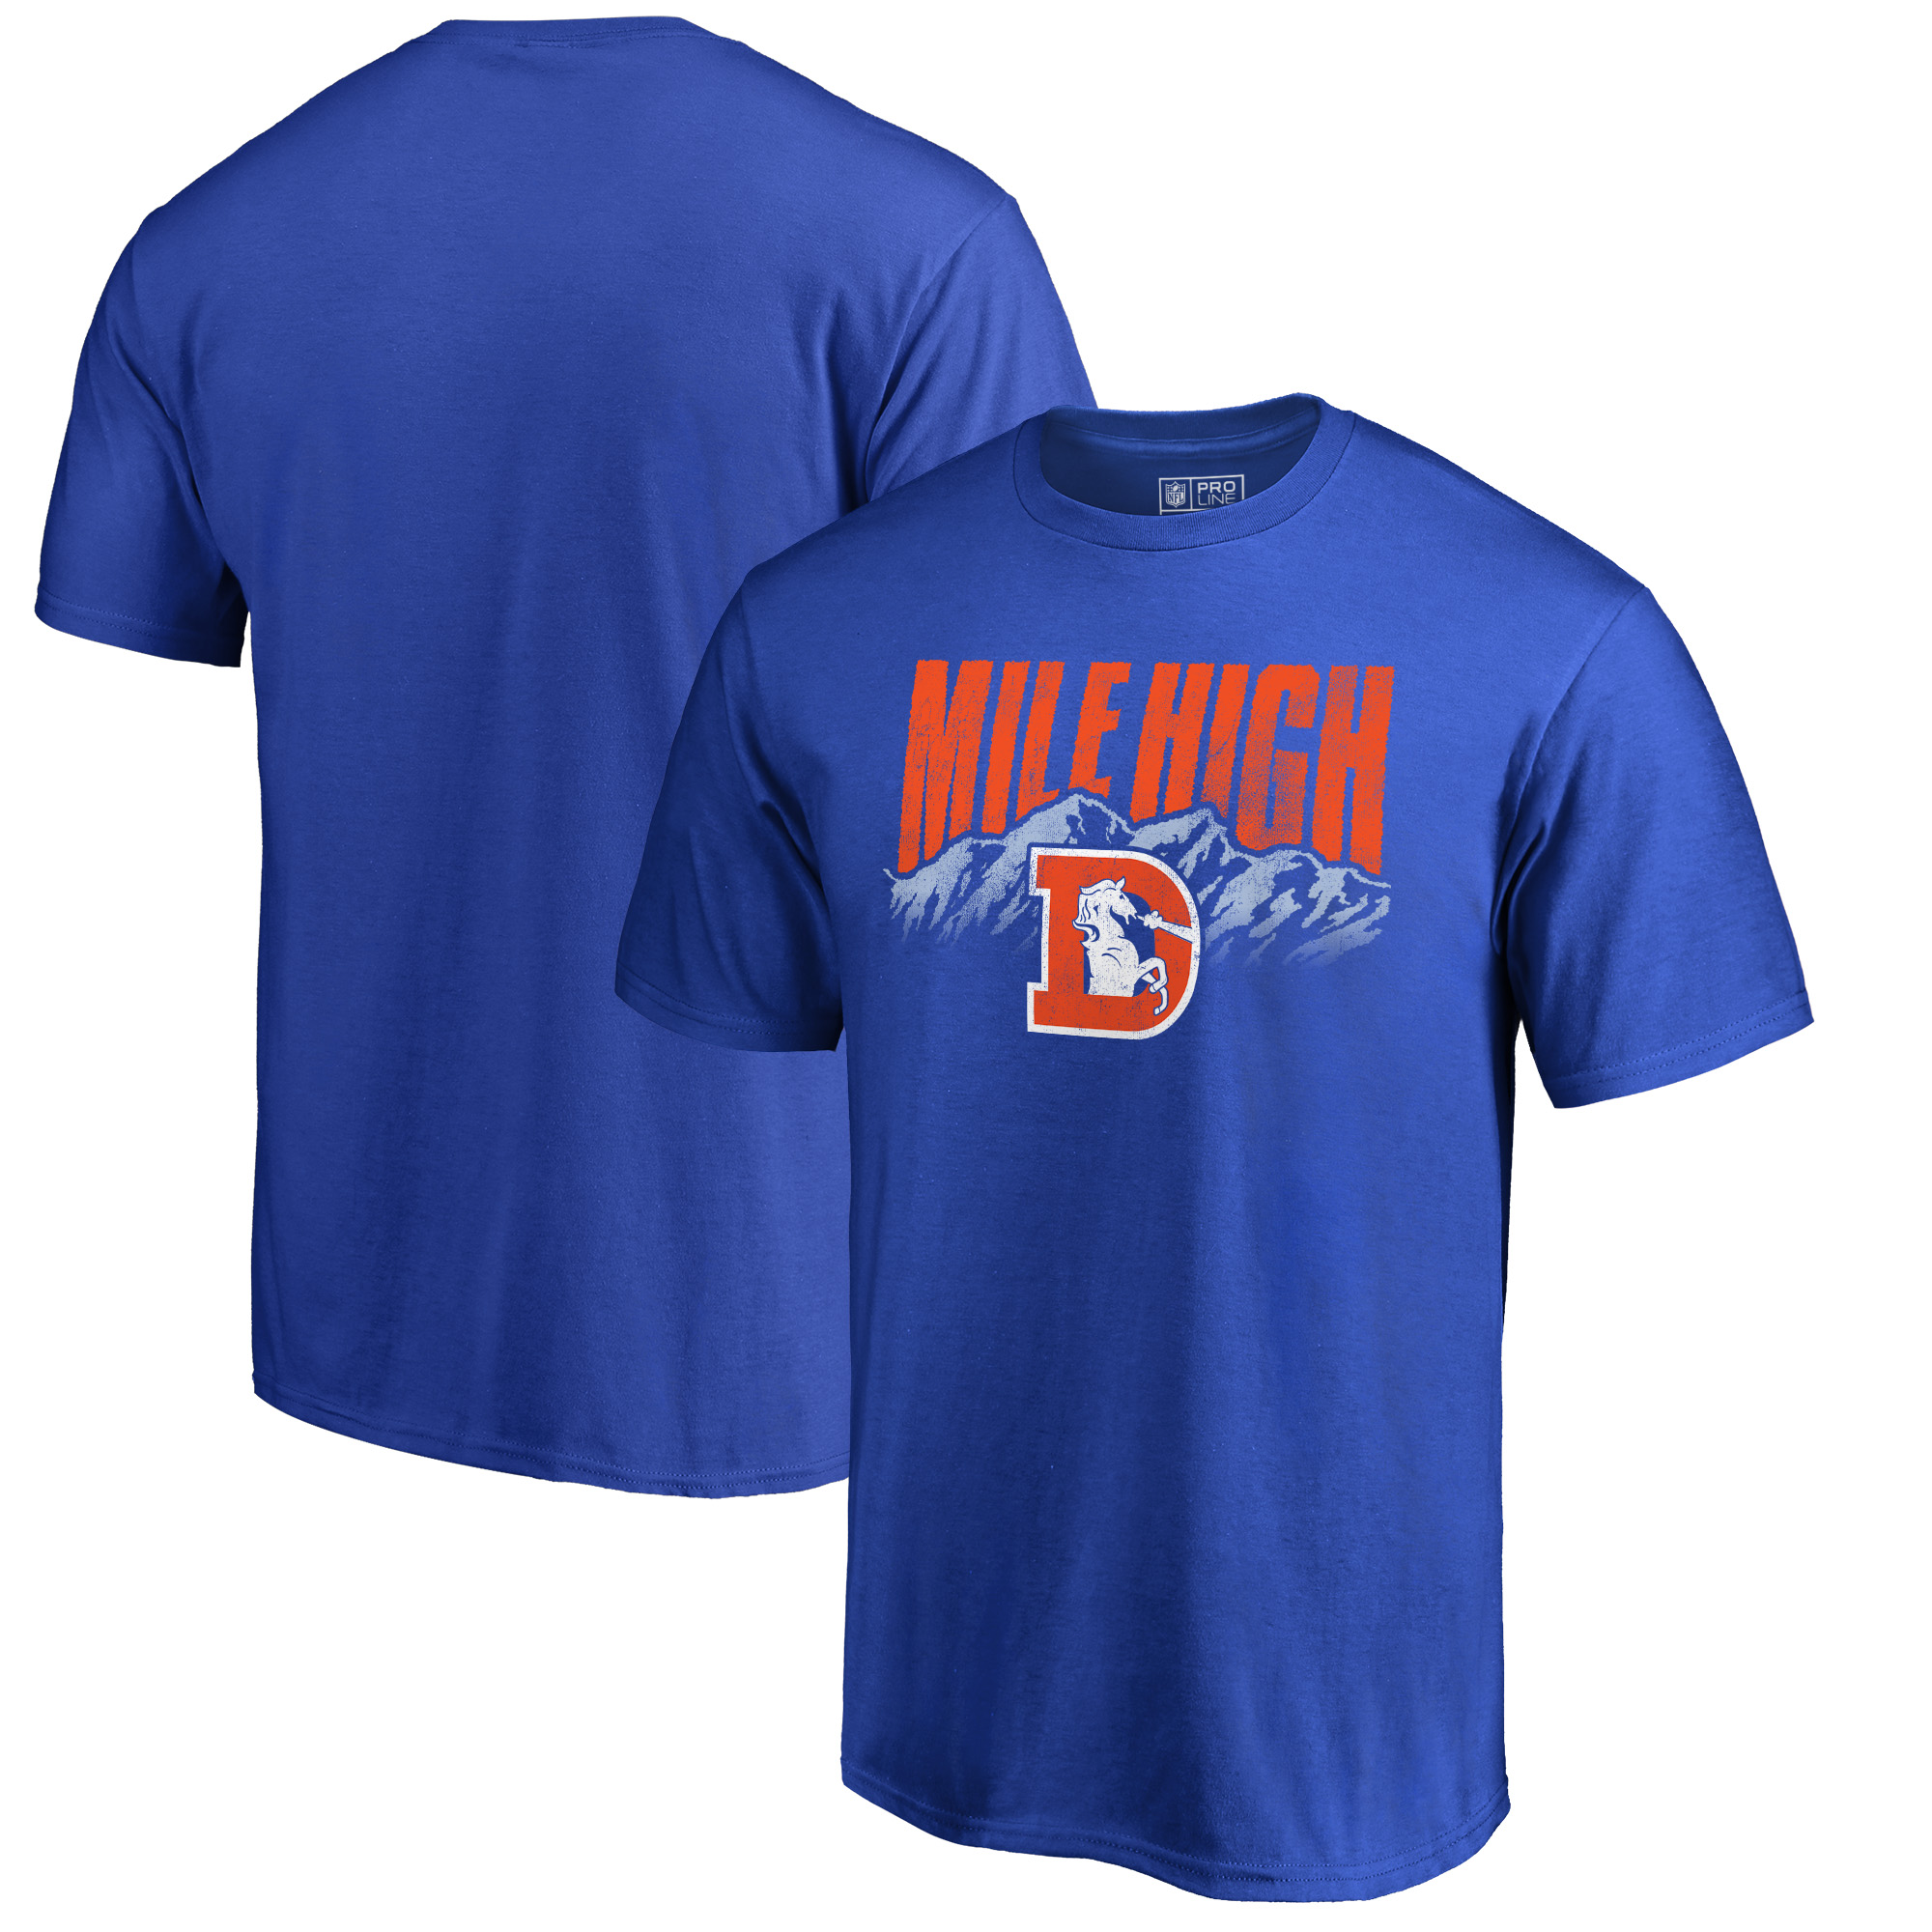 Denver Broncos NFL Pro Line by Fanatics Branded Hometown Collection Big & Tall T-Shirt - Blue